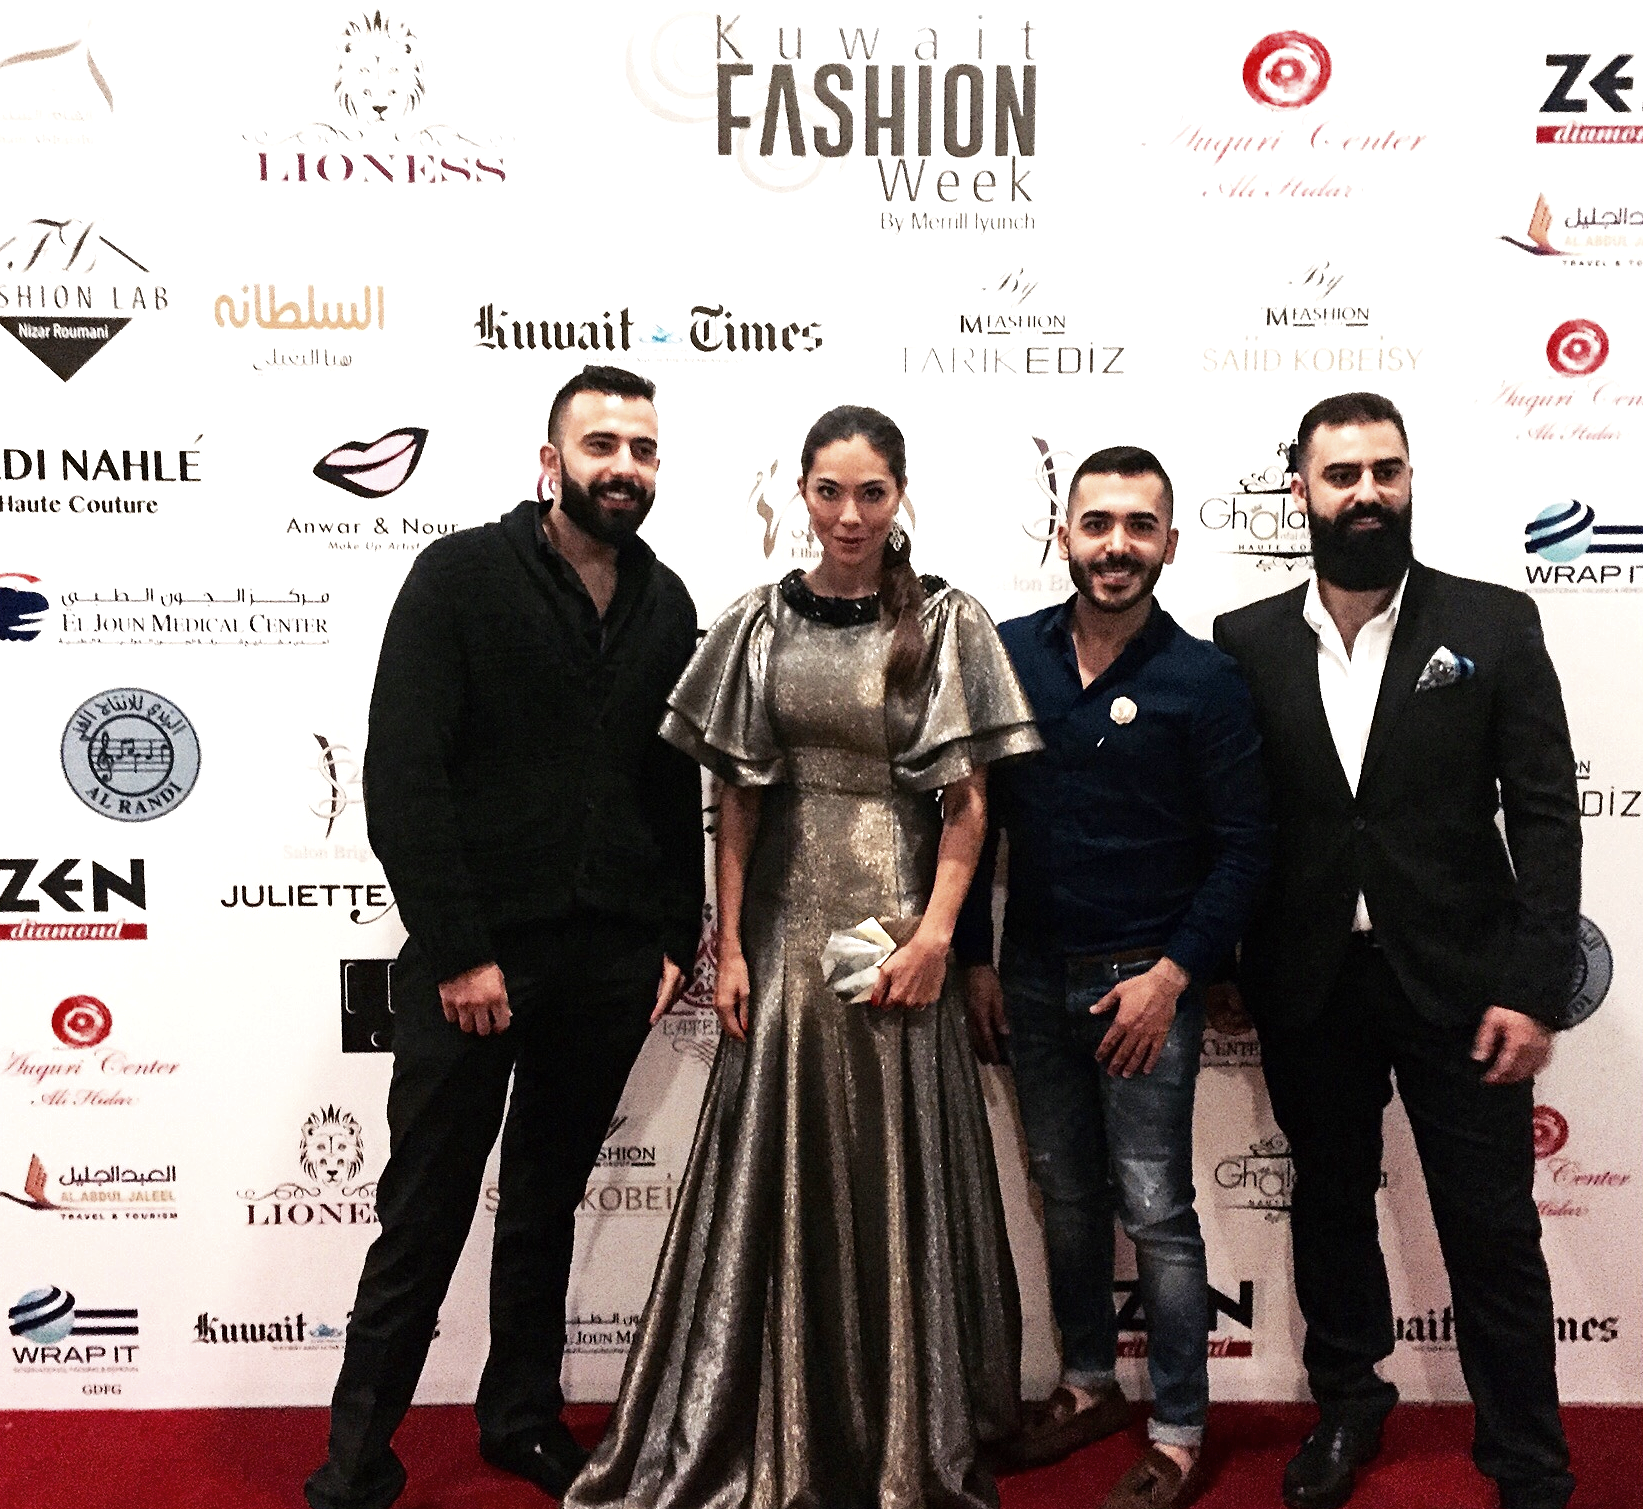 Image by Anna Maria Sandegren.From Left: Patrik Basil, Anna Maria Sandegren (in Lioness Couture), Fadi Seklawi, and Elie Abou